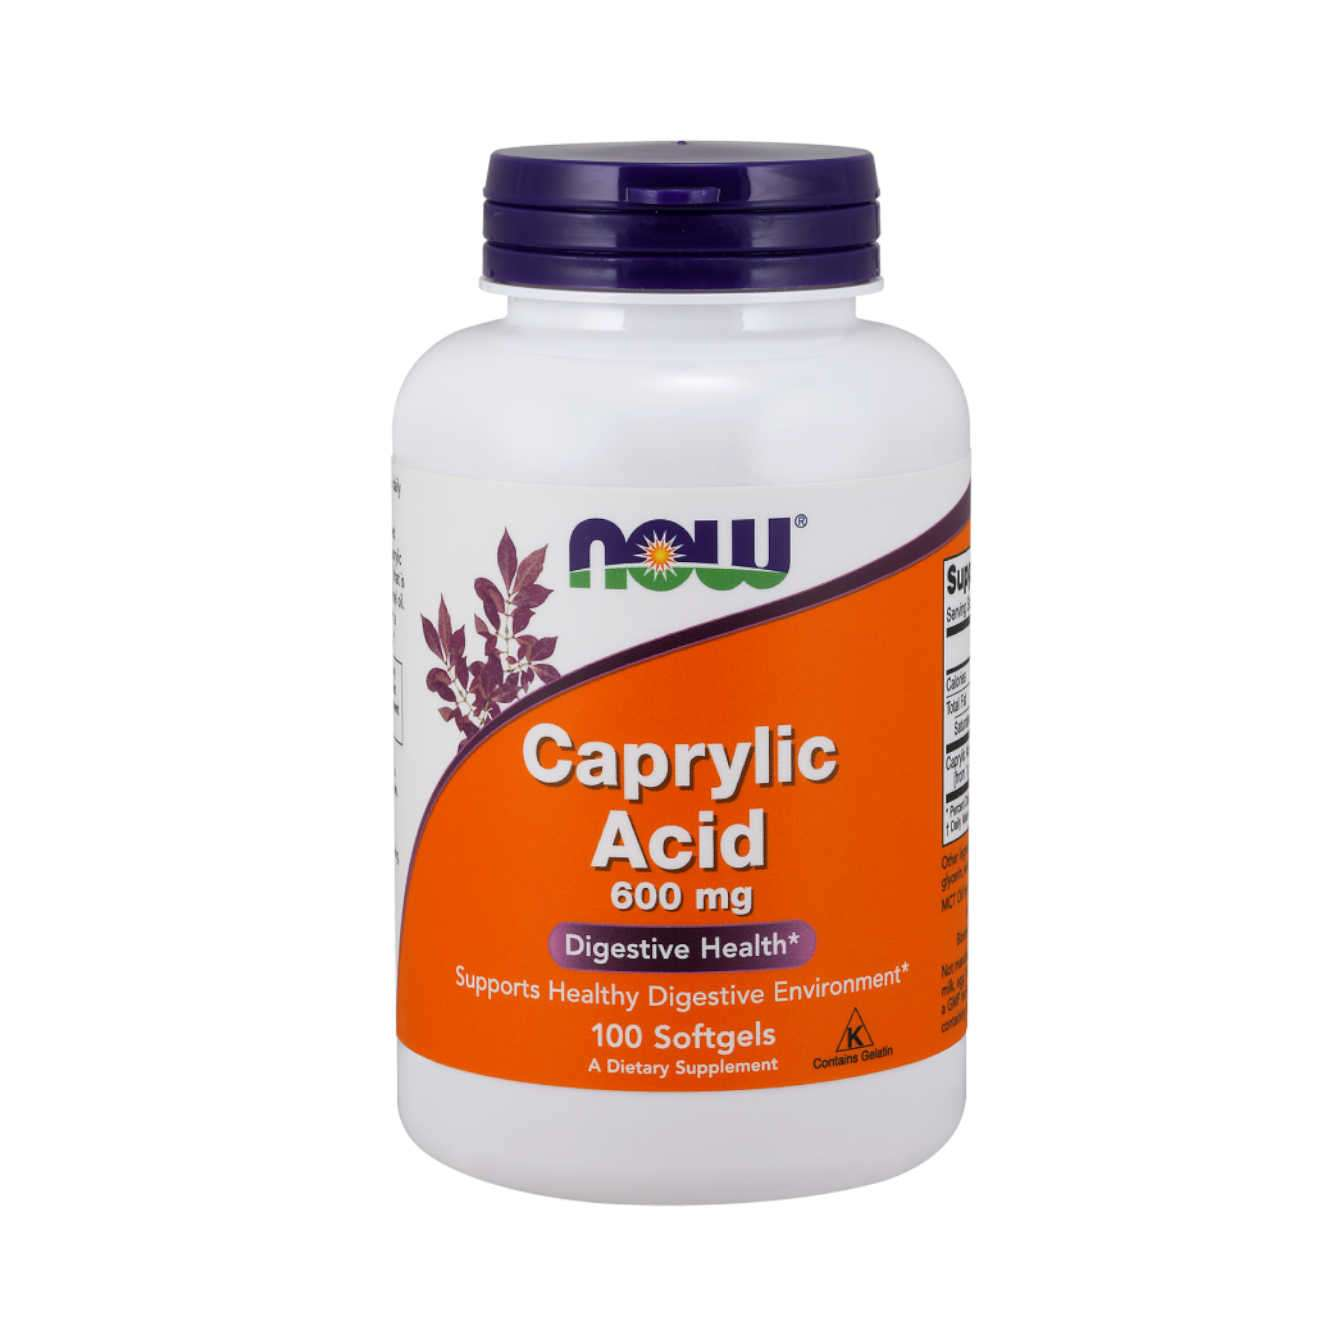 CAPRYLIC ACID 600mg - 100 softgels